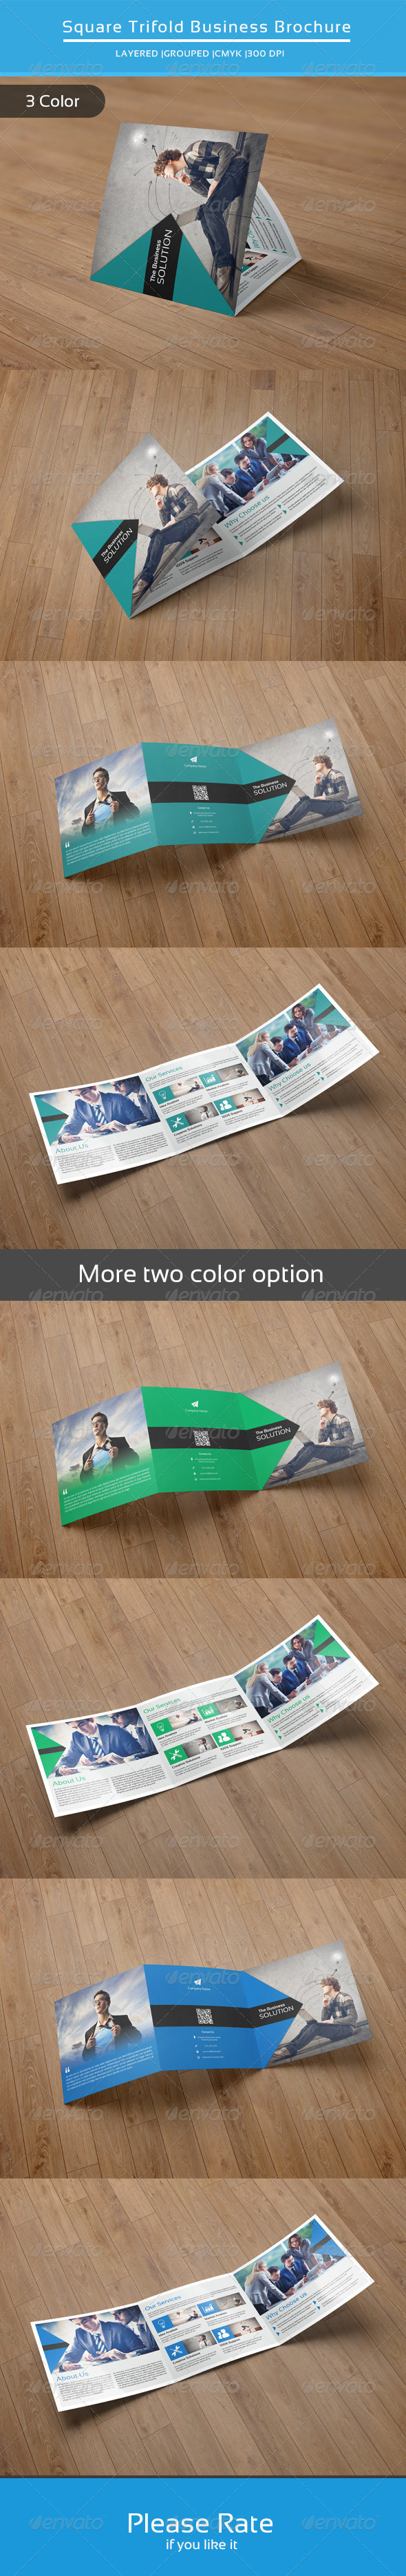 GraphicRiver Square Trifold Business Brochure-V22 8495248